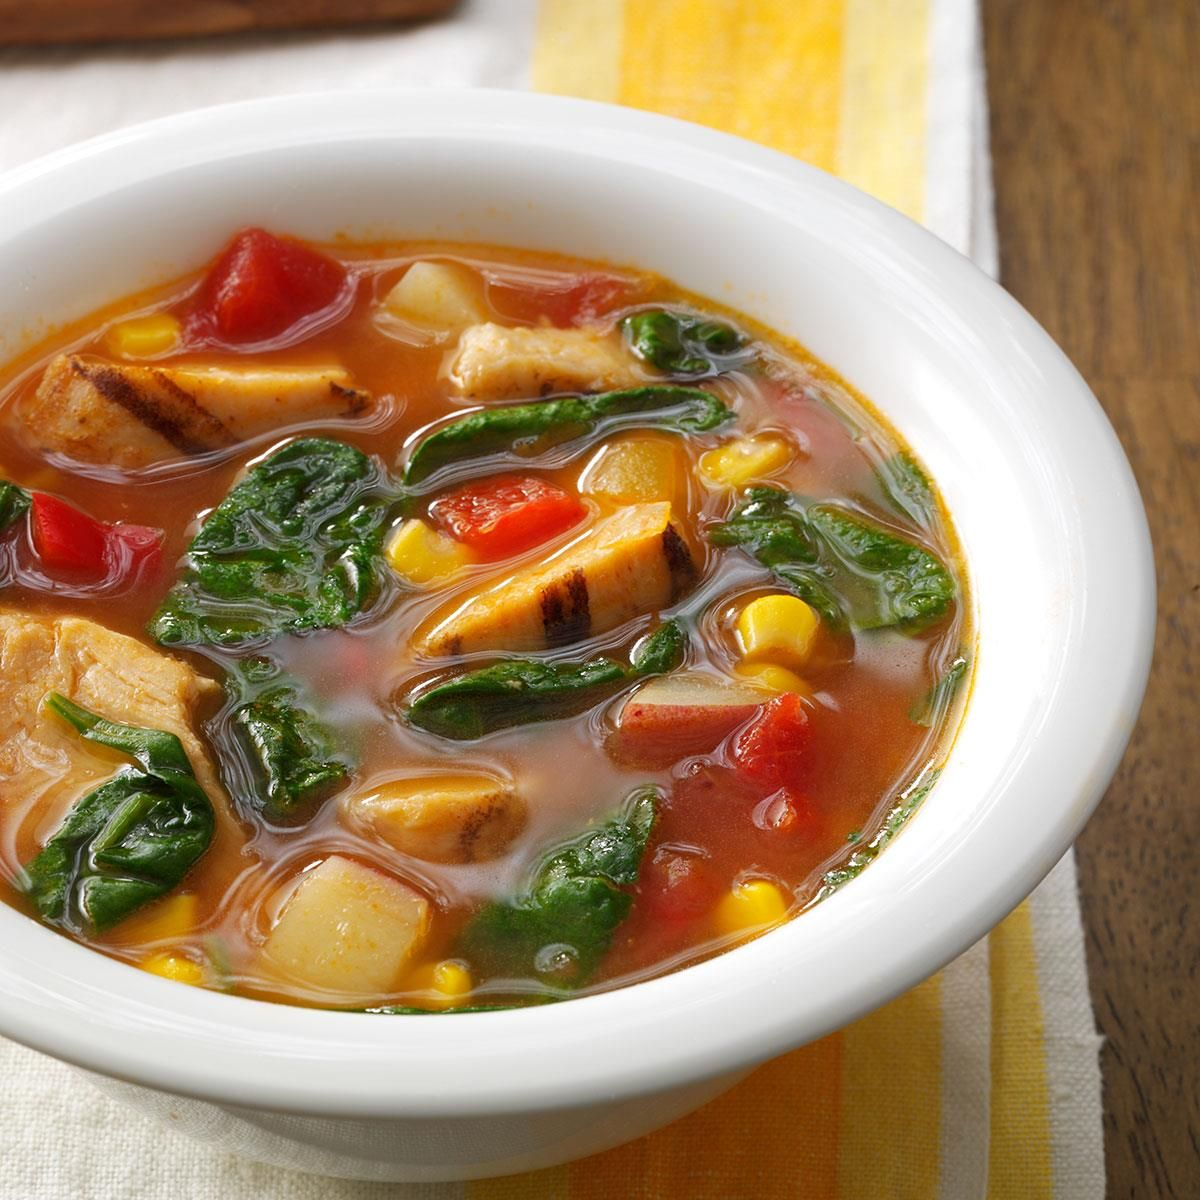 Slow Cooker Chicken Vegetable Soup Recipe Chicken Vegetable Soup Recipes Vegetable Soup Recipes Recipes